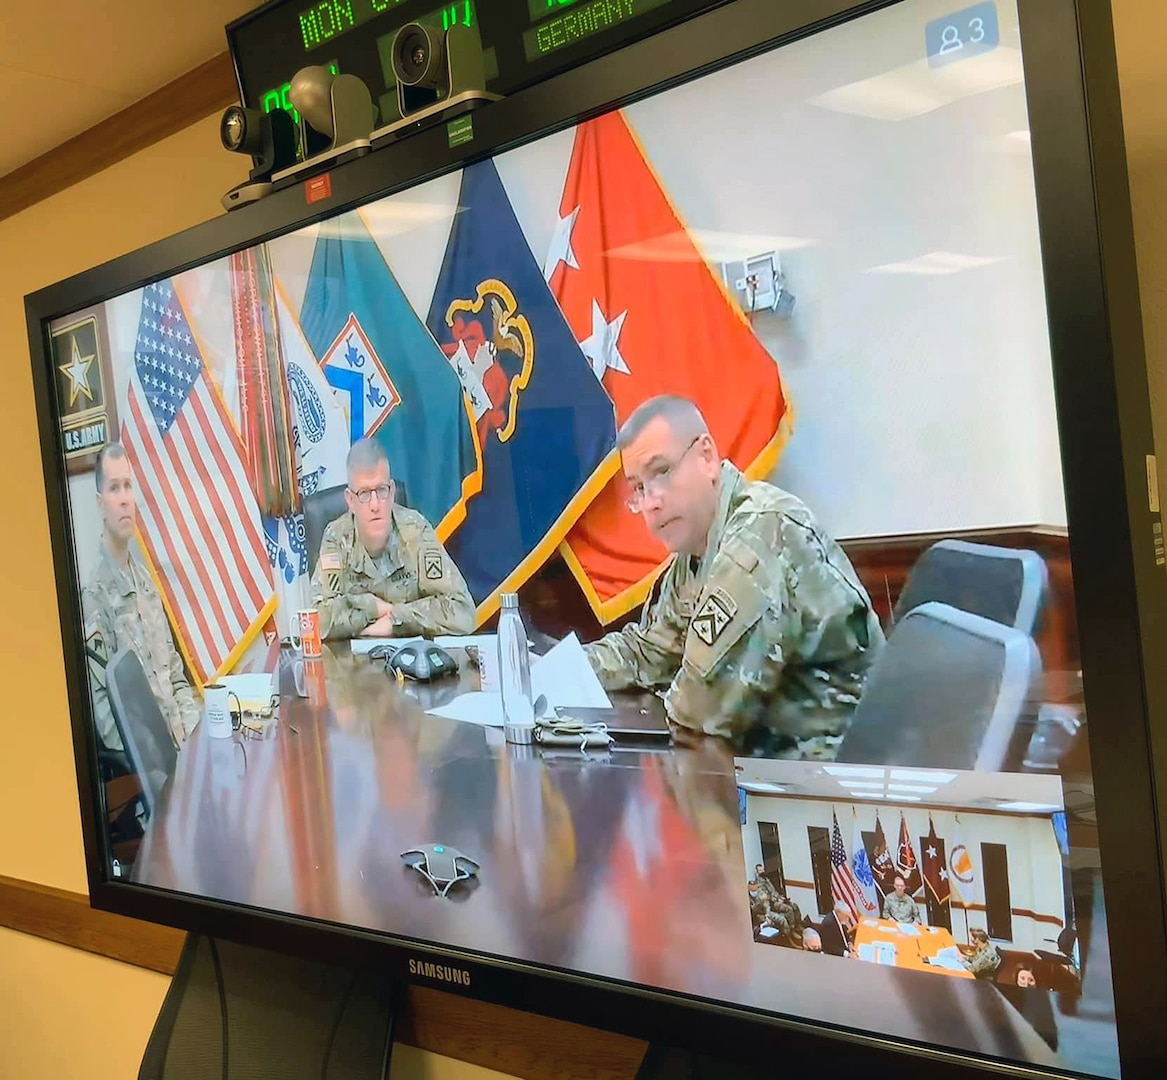 Lt. Gen. James Rainey, U.S. Army Combined Arms Center commanding general and Fort Leavenworth Commander, hosted a Virtual Battlefield Circulation Video Teleconference from Fort Leavenworth, Kansas, with U.S. Army Medical Center of Excellence key leaders at Joint Base San Antonio-Fort Sam Houston Oct. 19. MEDCoE is one of 10 Centers of Excellence under the Combined Arms Center and the U.S. Army Training and Doctrine Command.